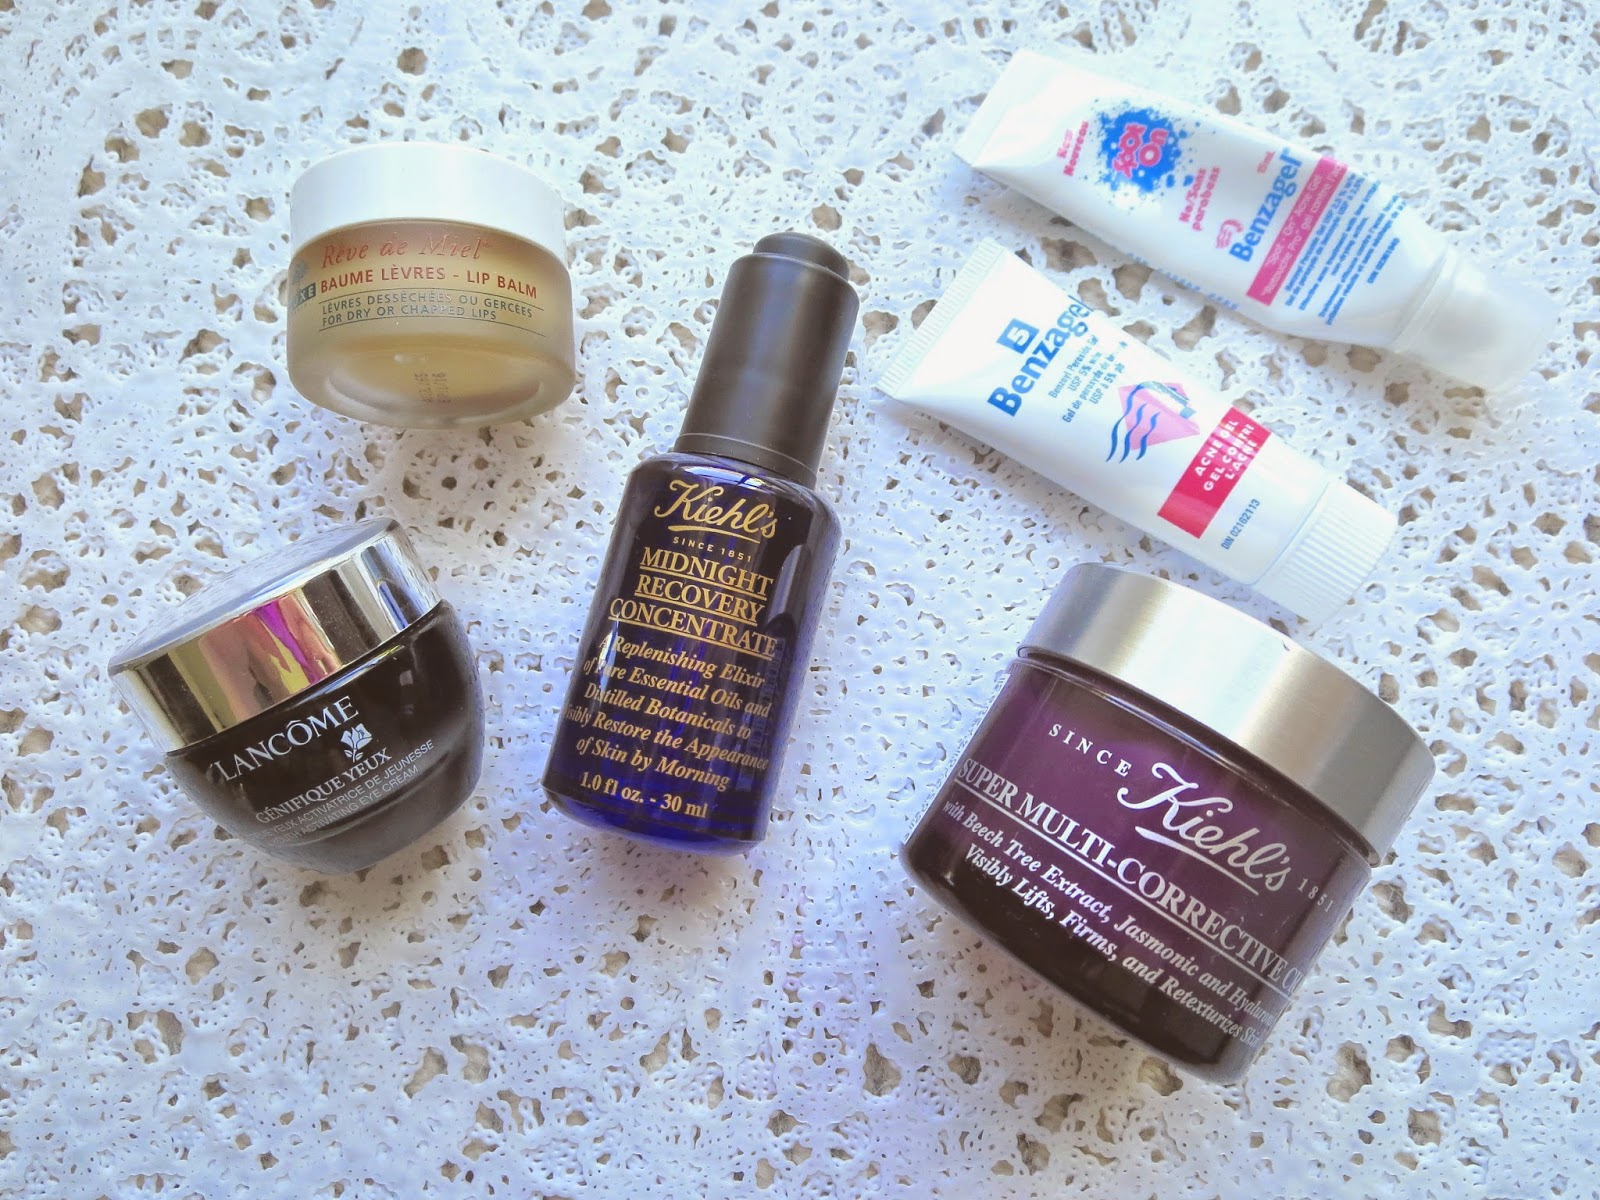 a picture of Moisturizers & Treatments ; Kiehl's Midnight Recovery Concentrate, Kiehl's Super Multi Corrective Cream, Nuxe Reve de miel, Lancome genefique eye cream, benzagel 5, benzagel spot on